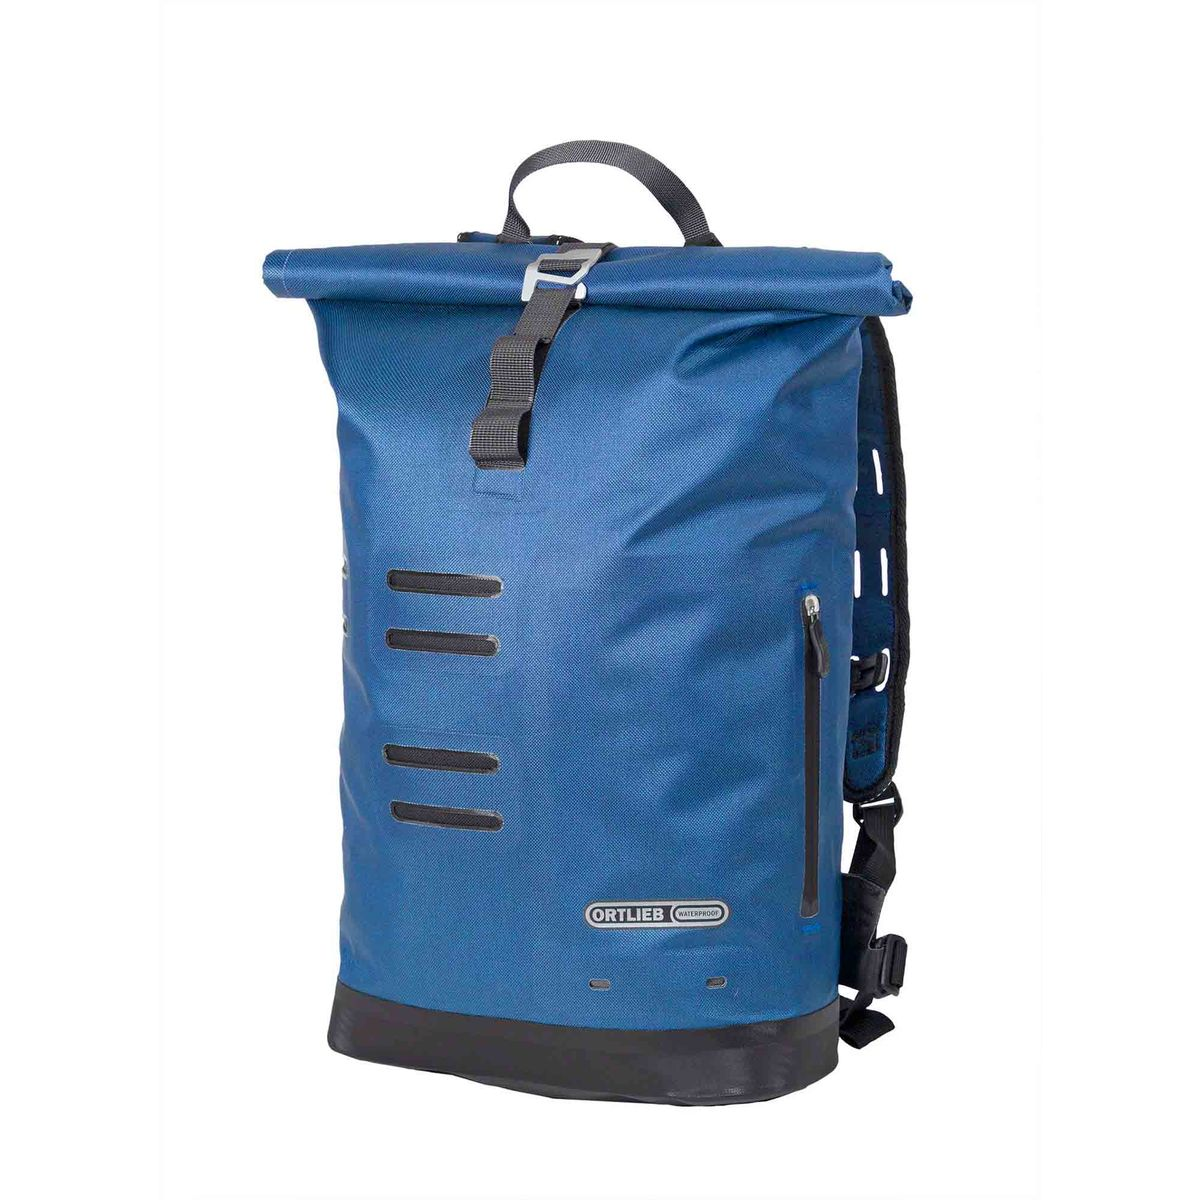 COMMUTER DAYPACK CITY backpack